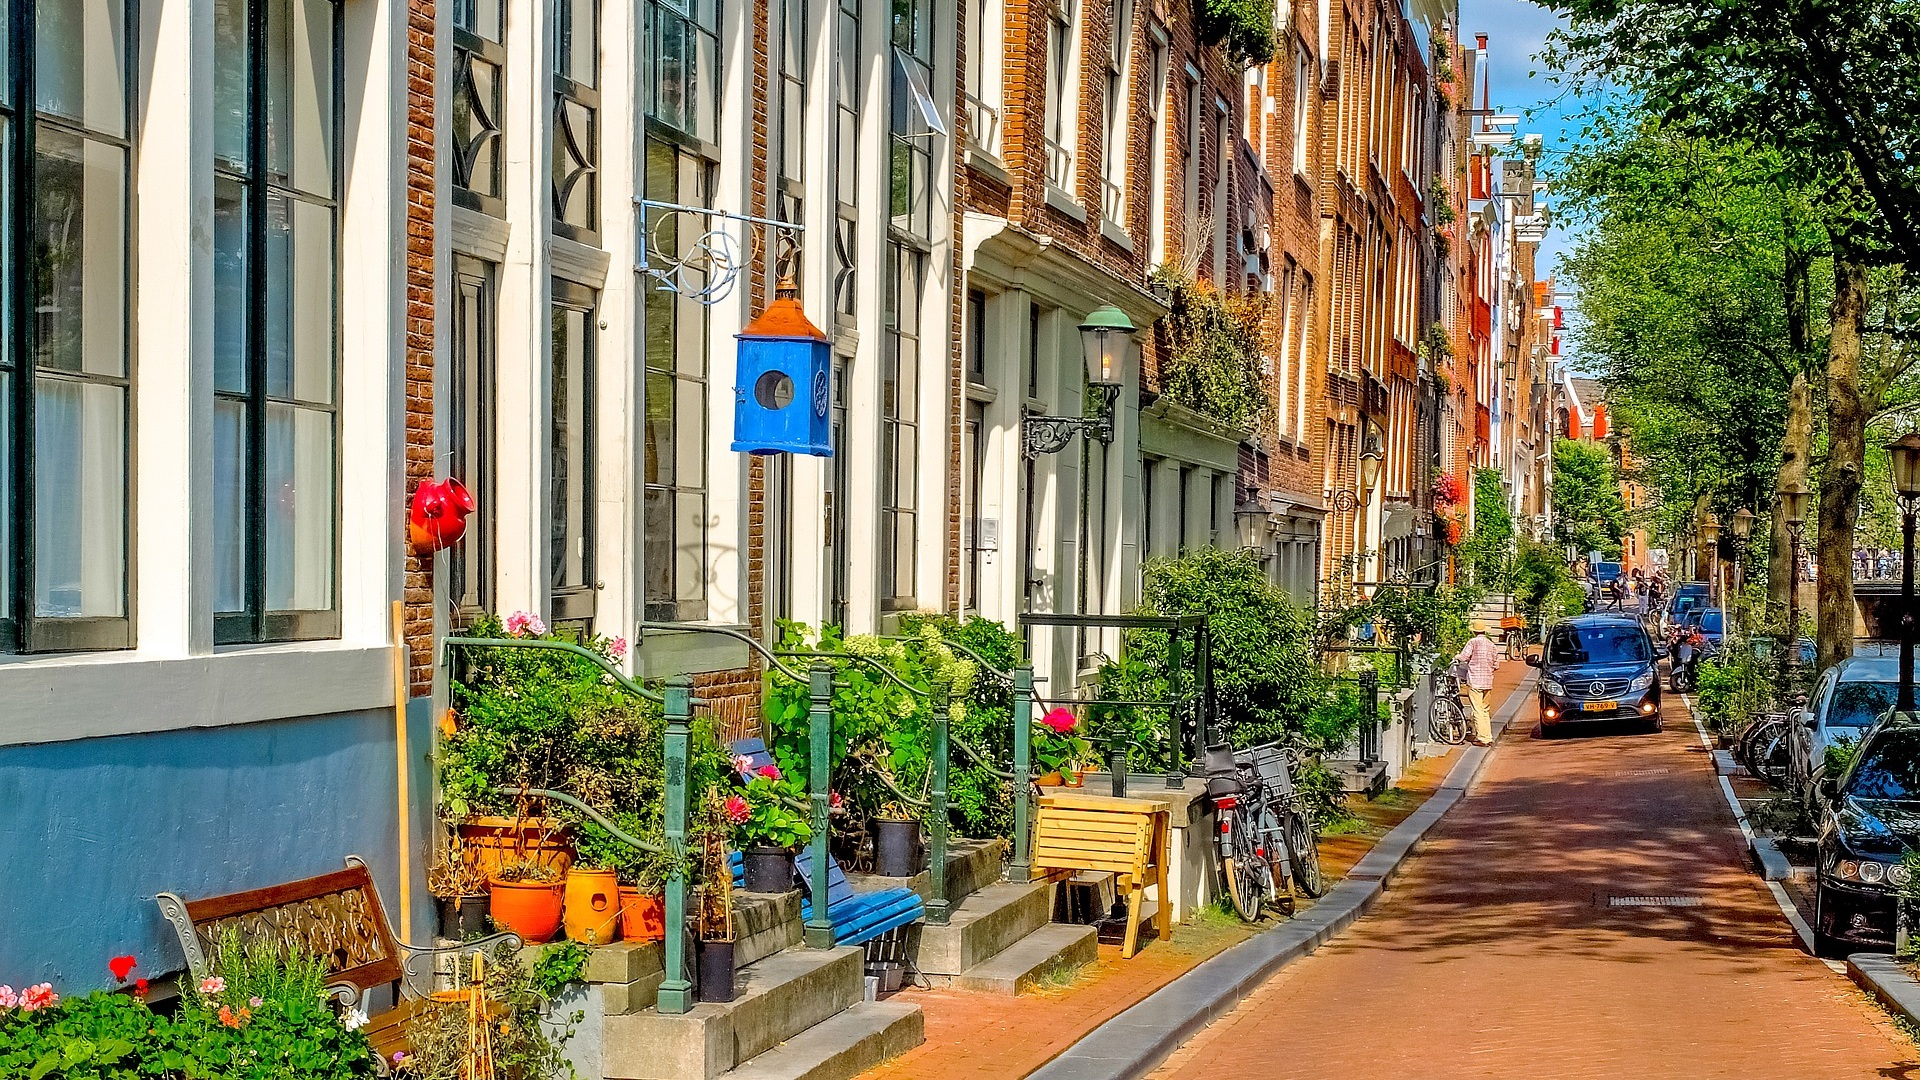 Jordaan District - Amsterdam, Netherlands